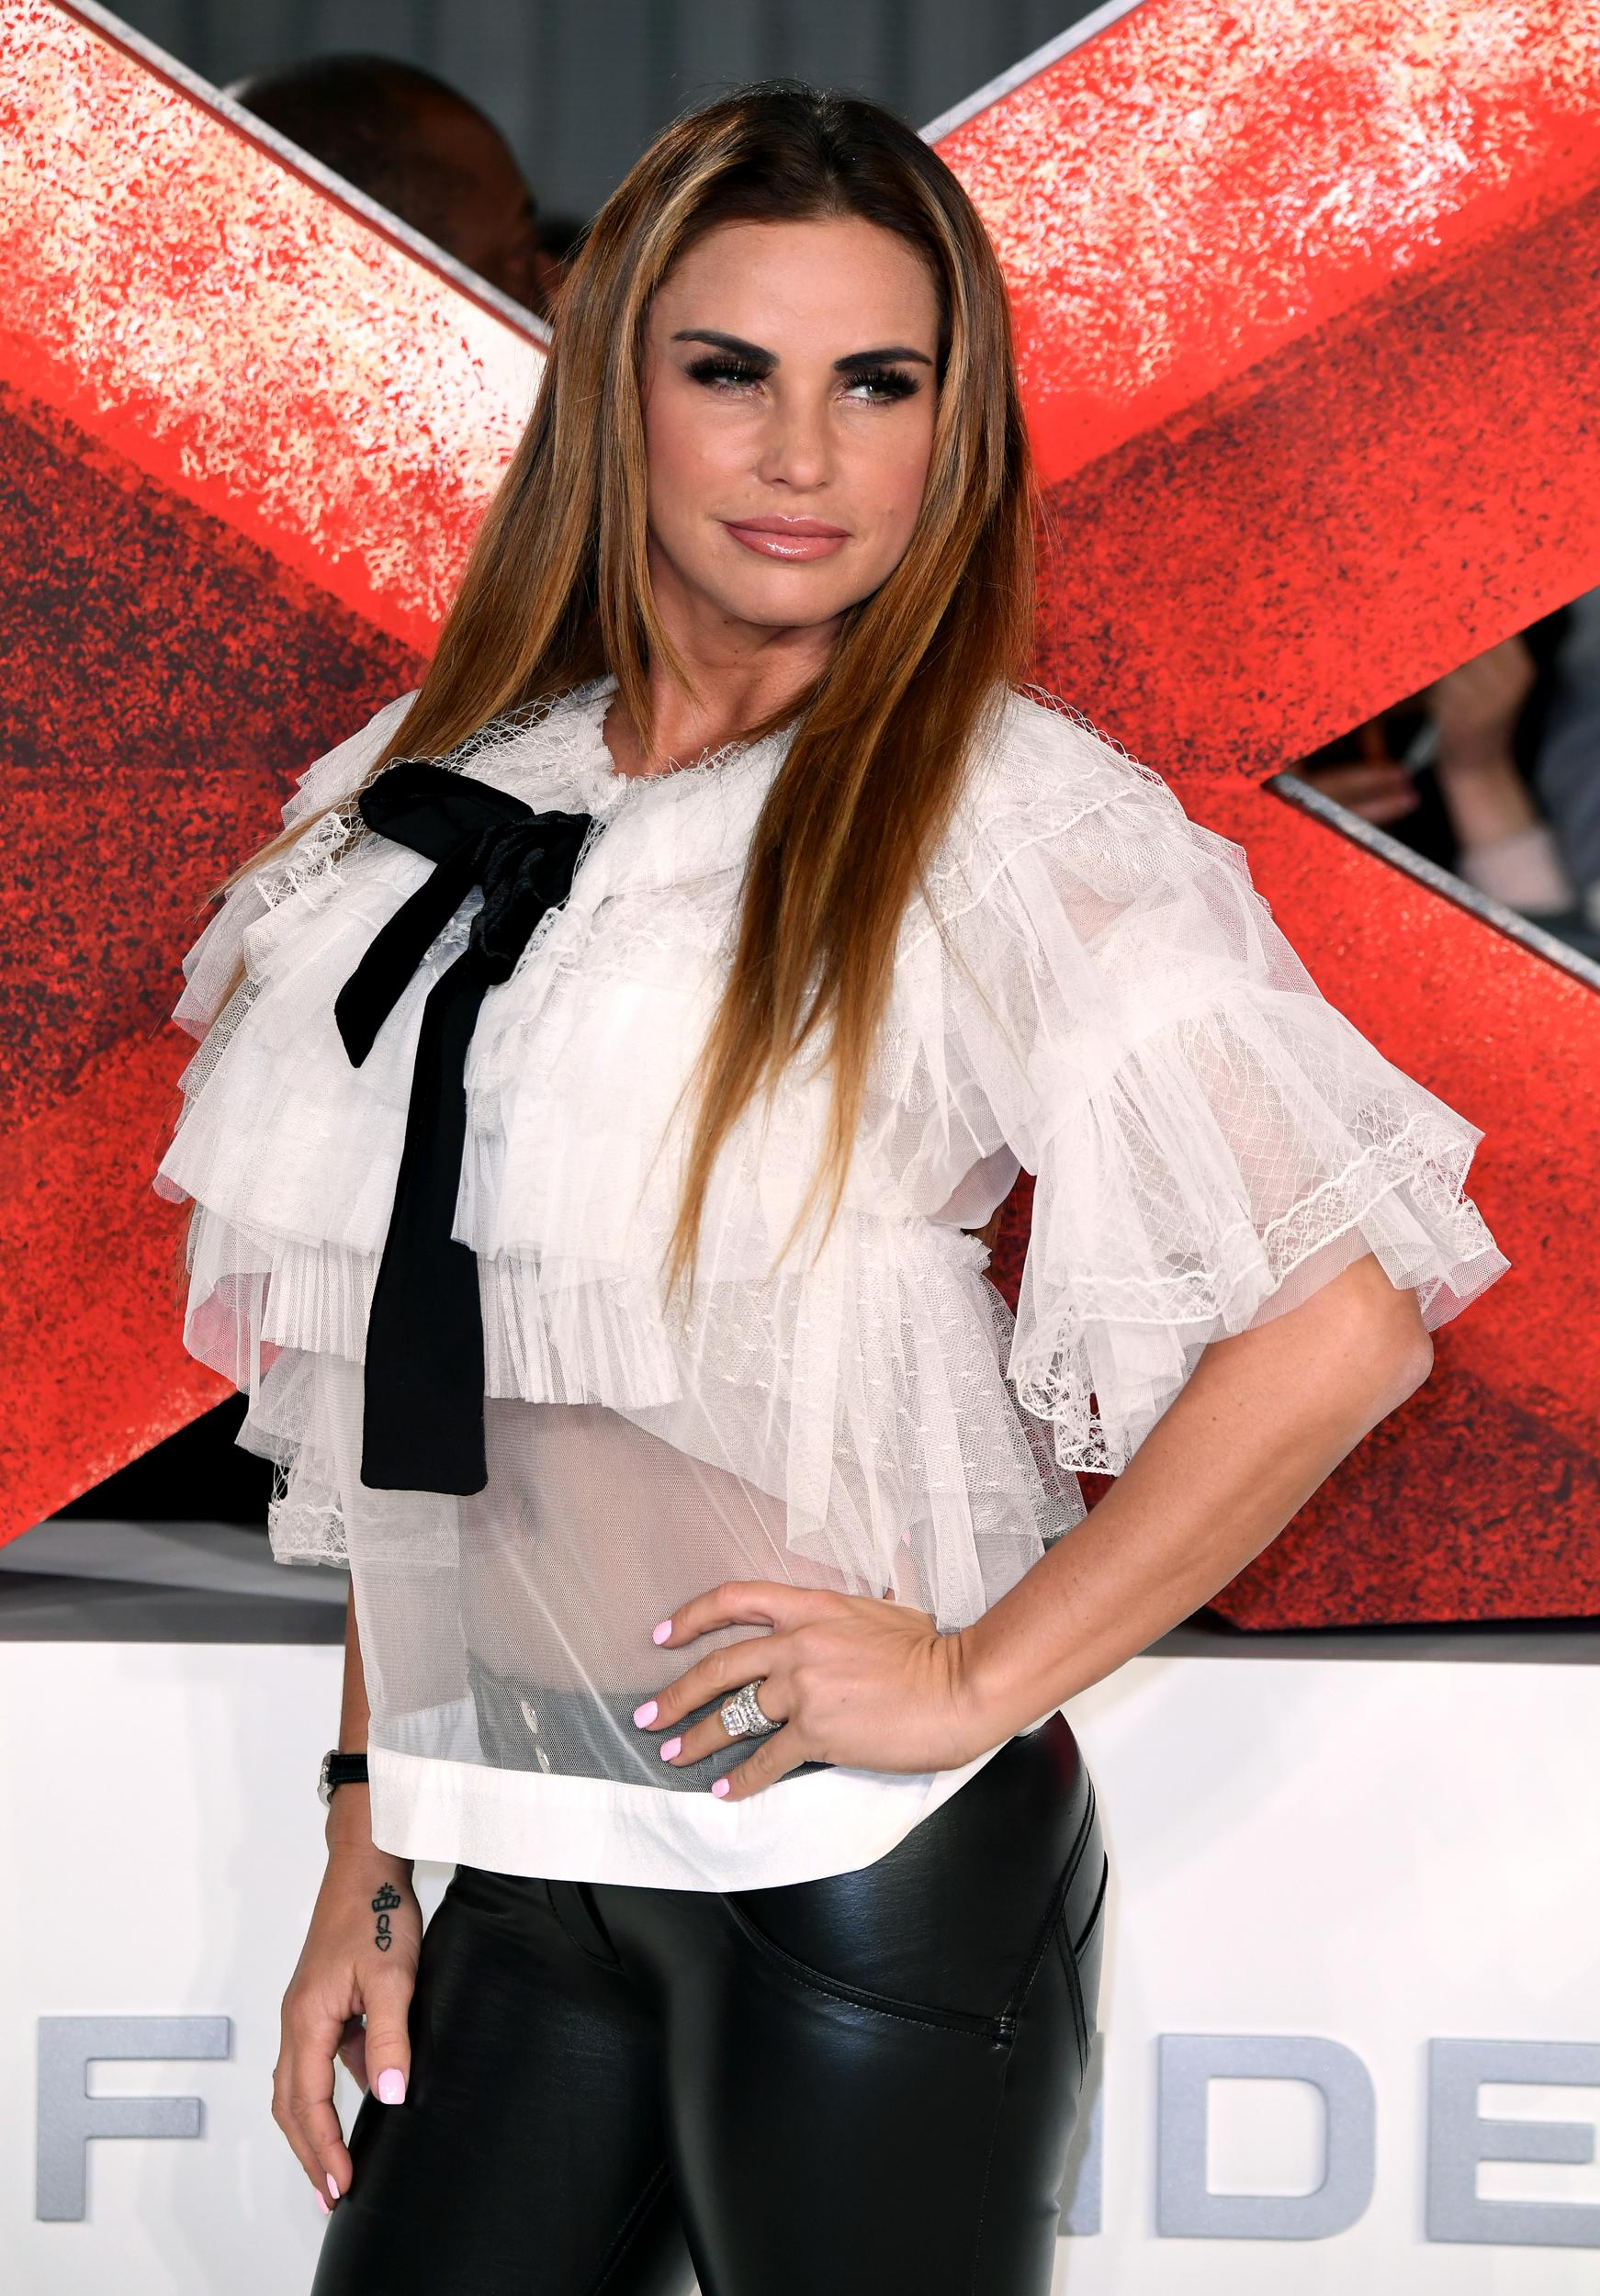 Katie Price attending the xXx: Return of Xander Cage Premiere at the O2 Cineworld, London